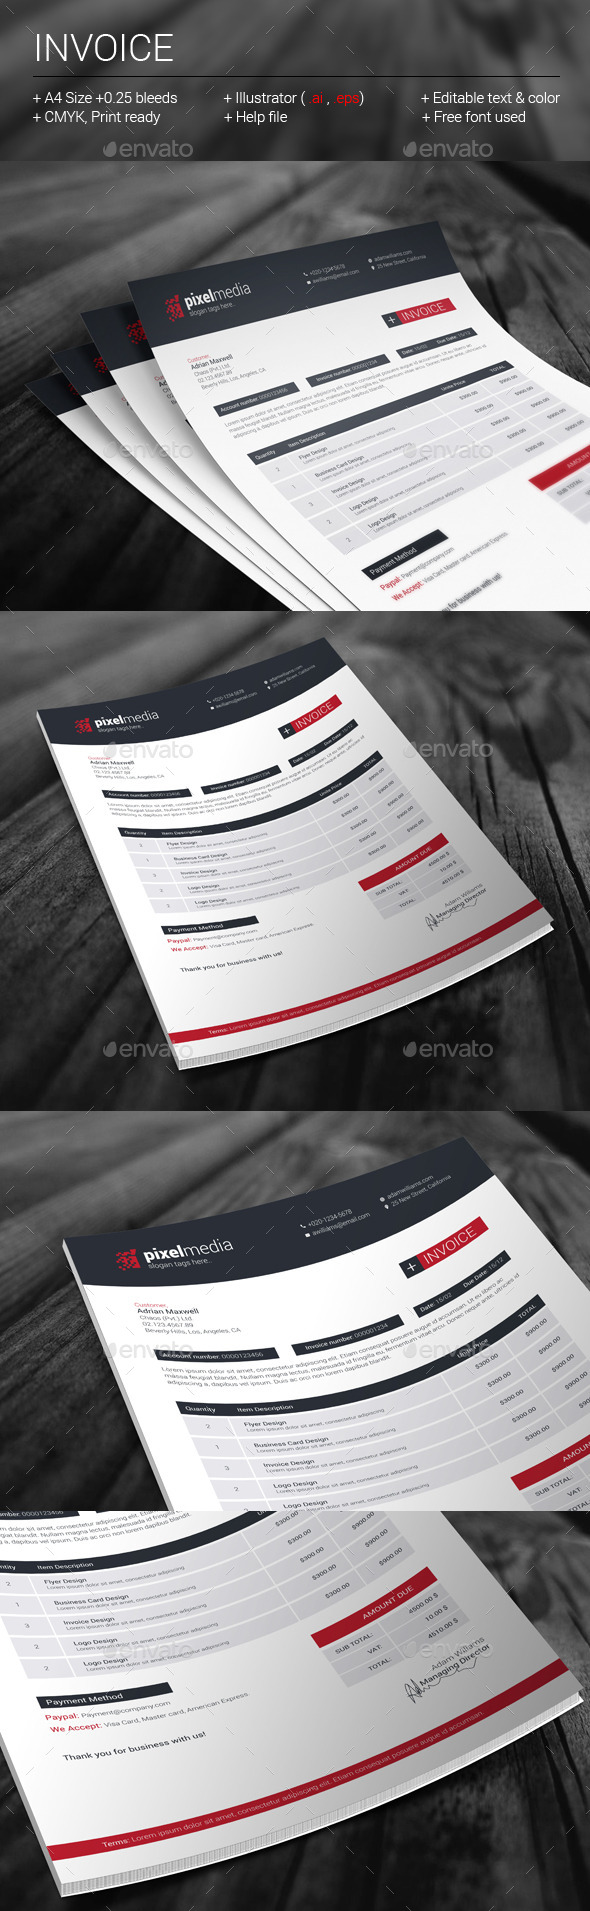 GraphicRiver Invoice 11331521